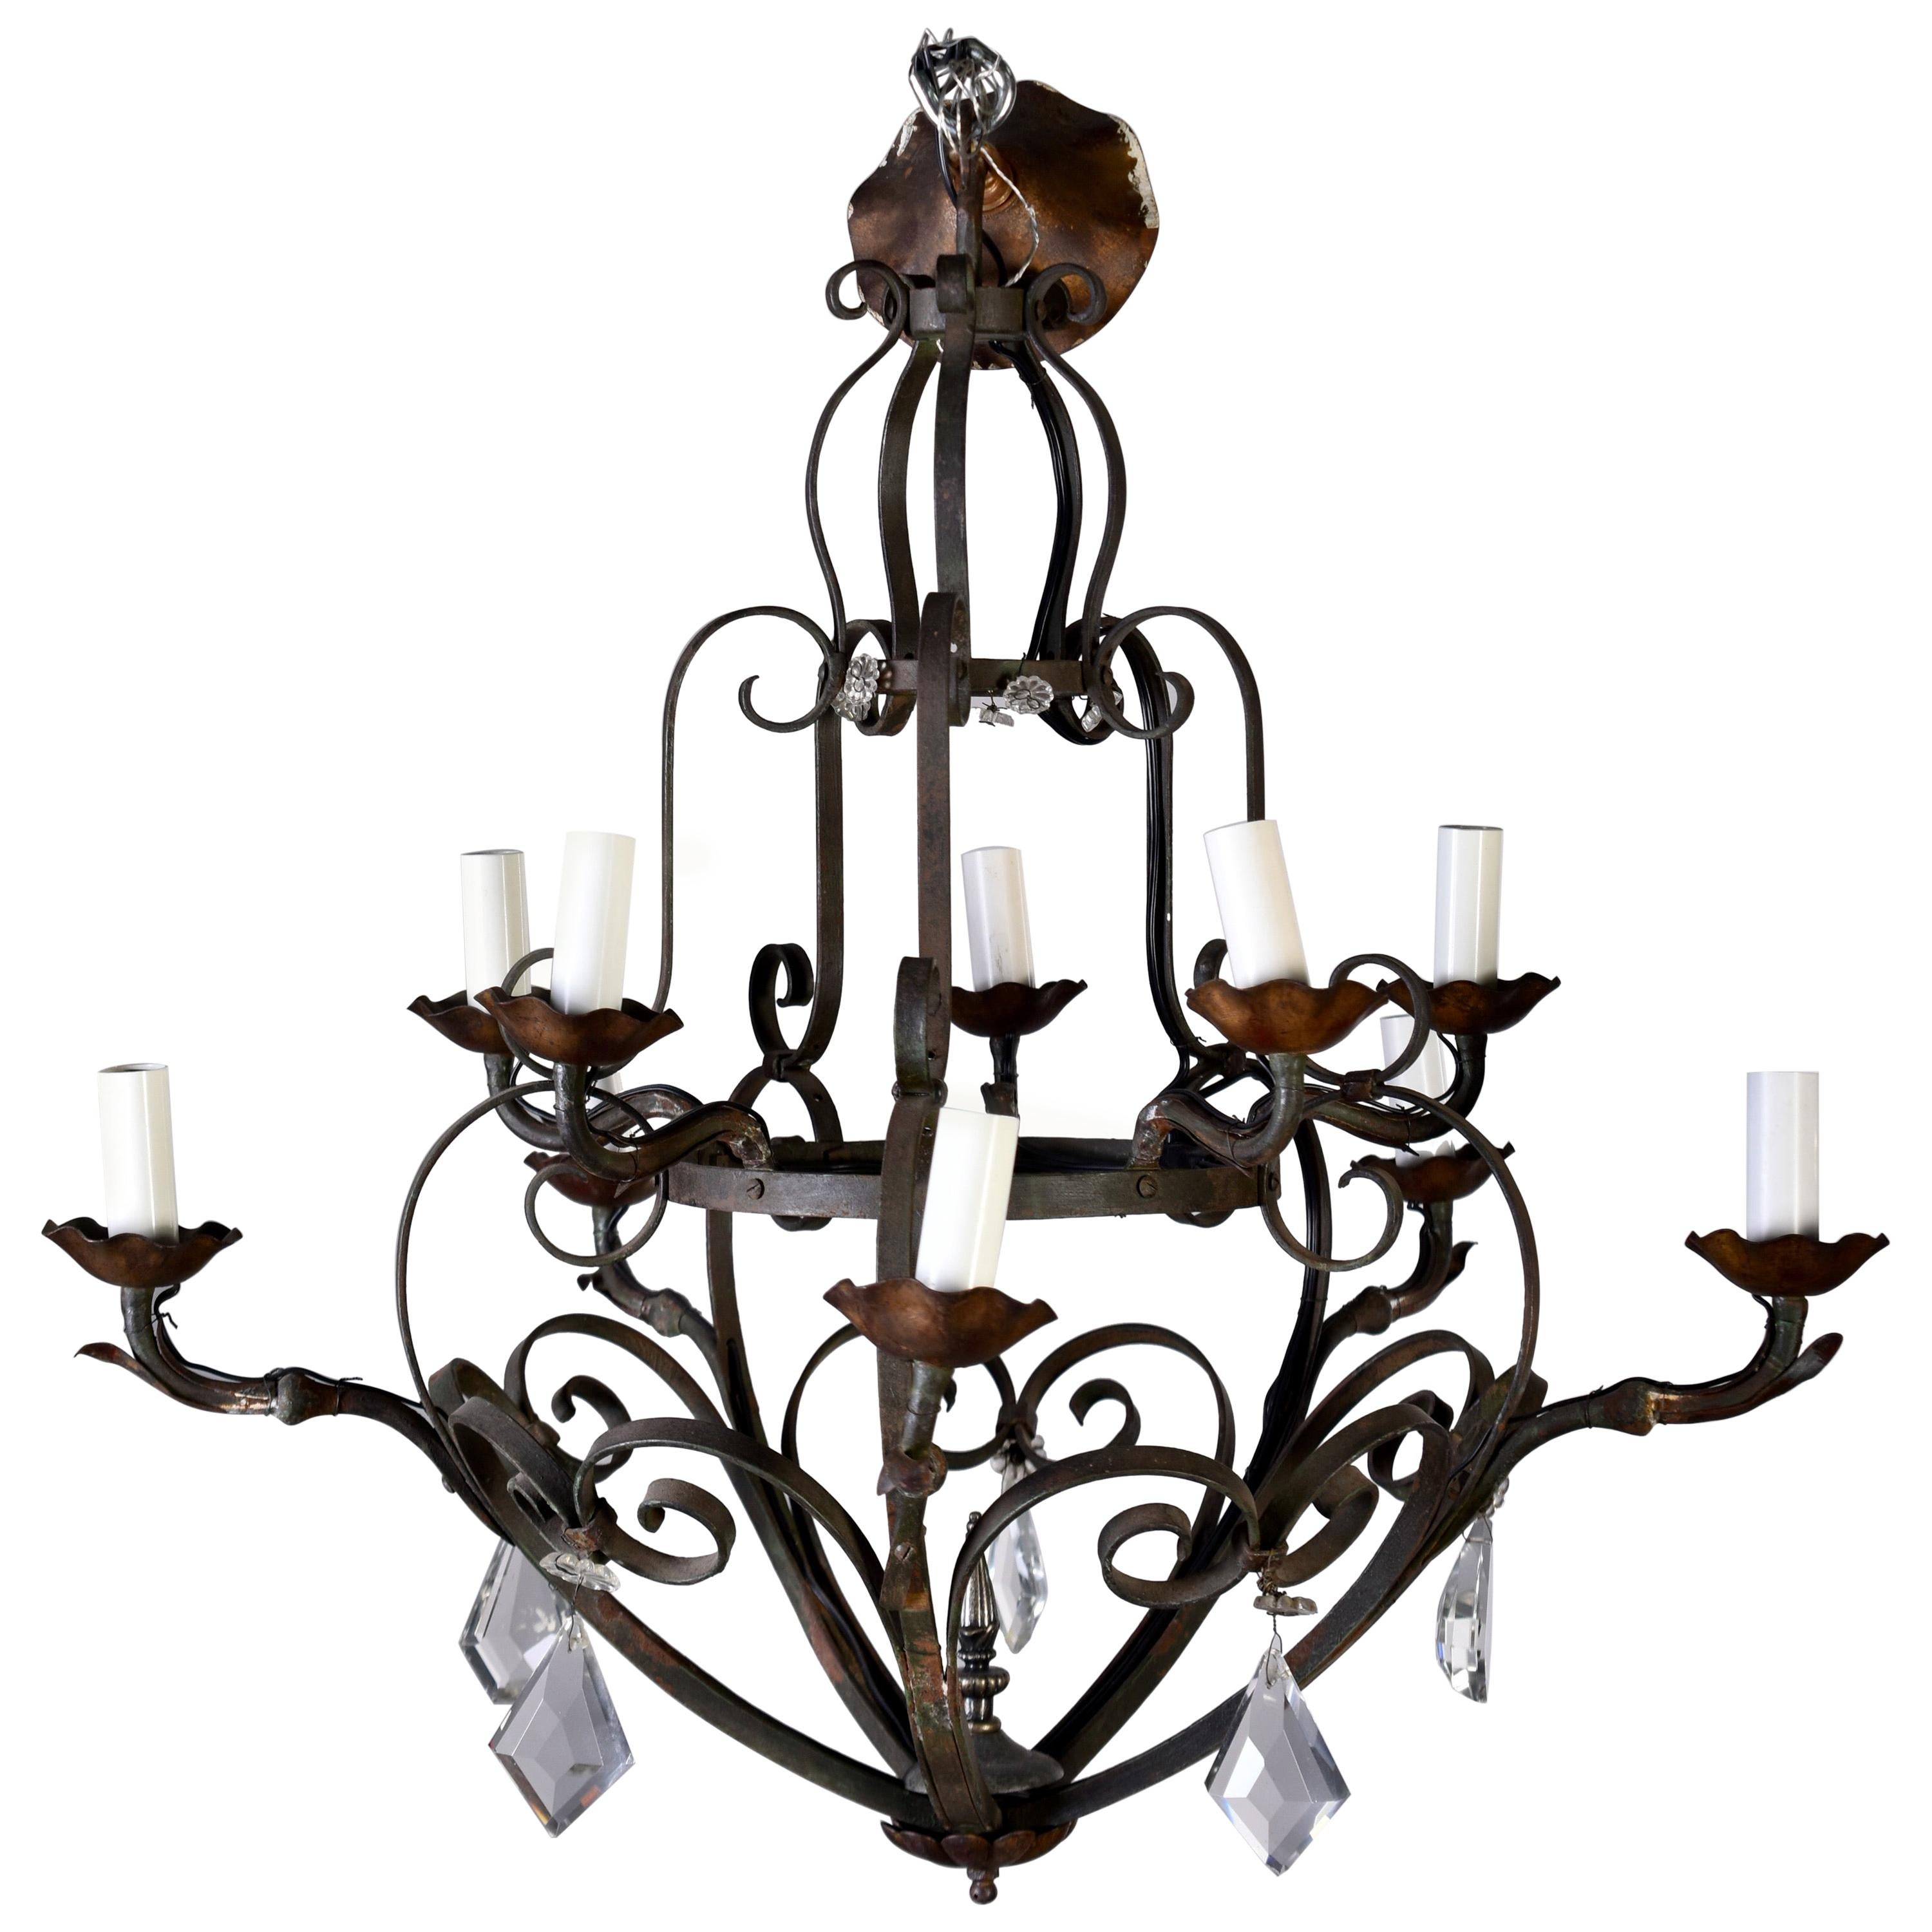 Ten-Light French Iron Chandelier with Crystals